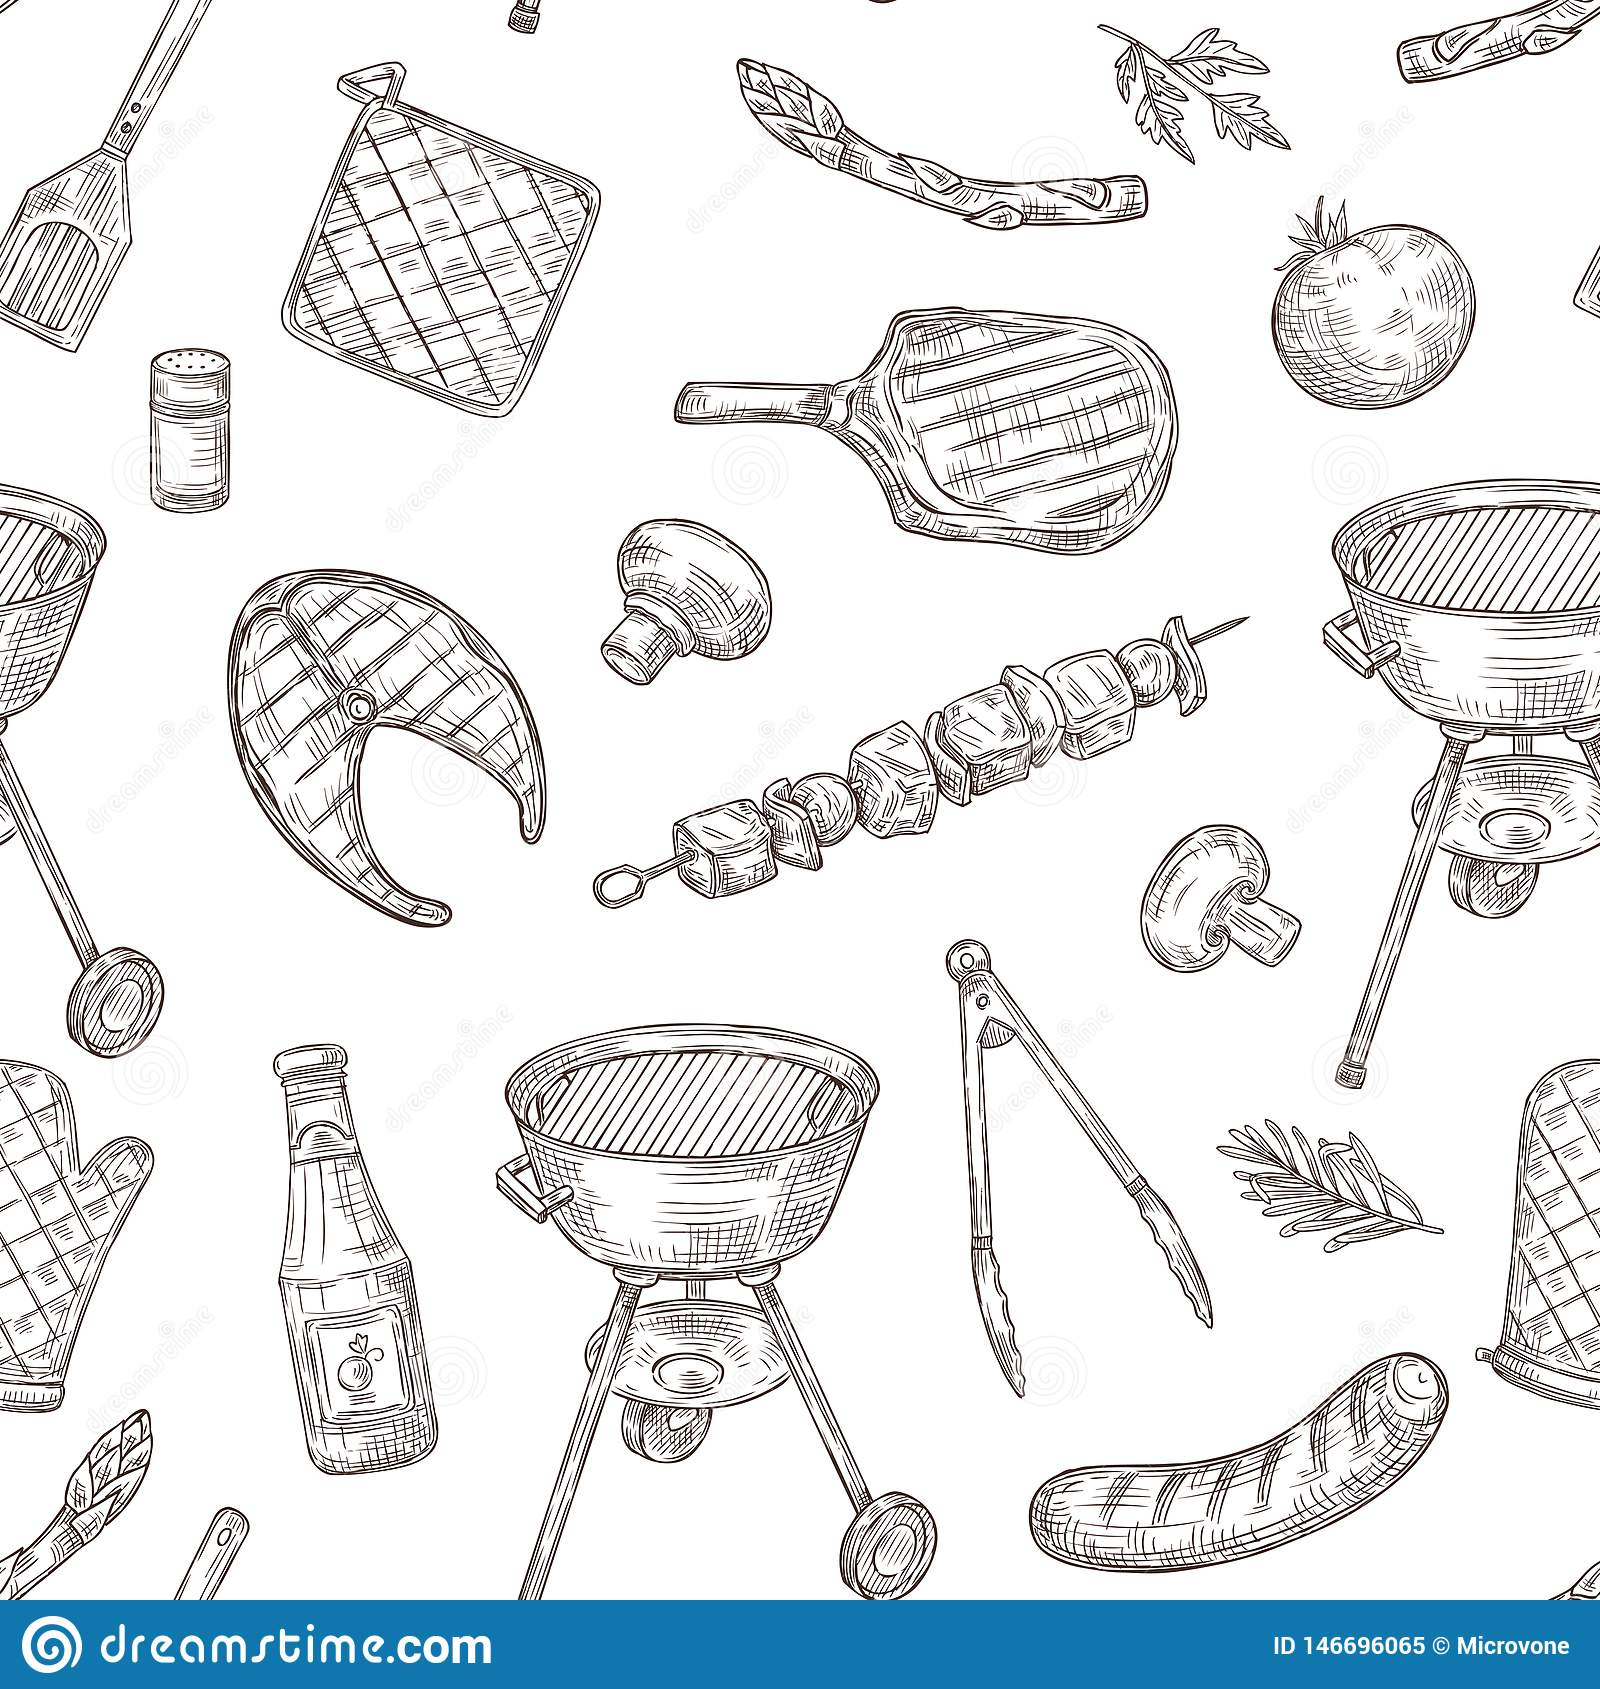 Barbecue seamless pattern. Sketch barbeque chicken grill vegetables fried steak meat picnic party vintage bbq food